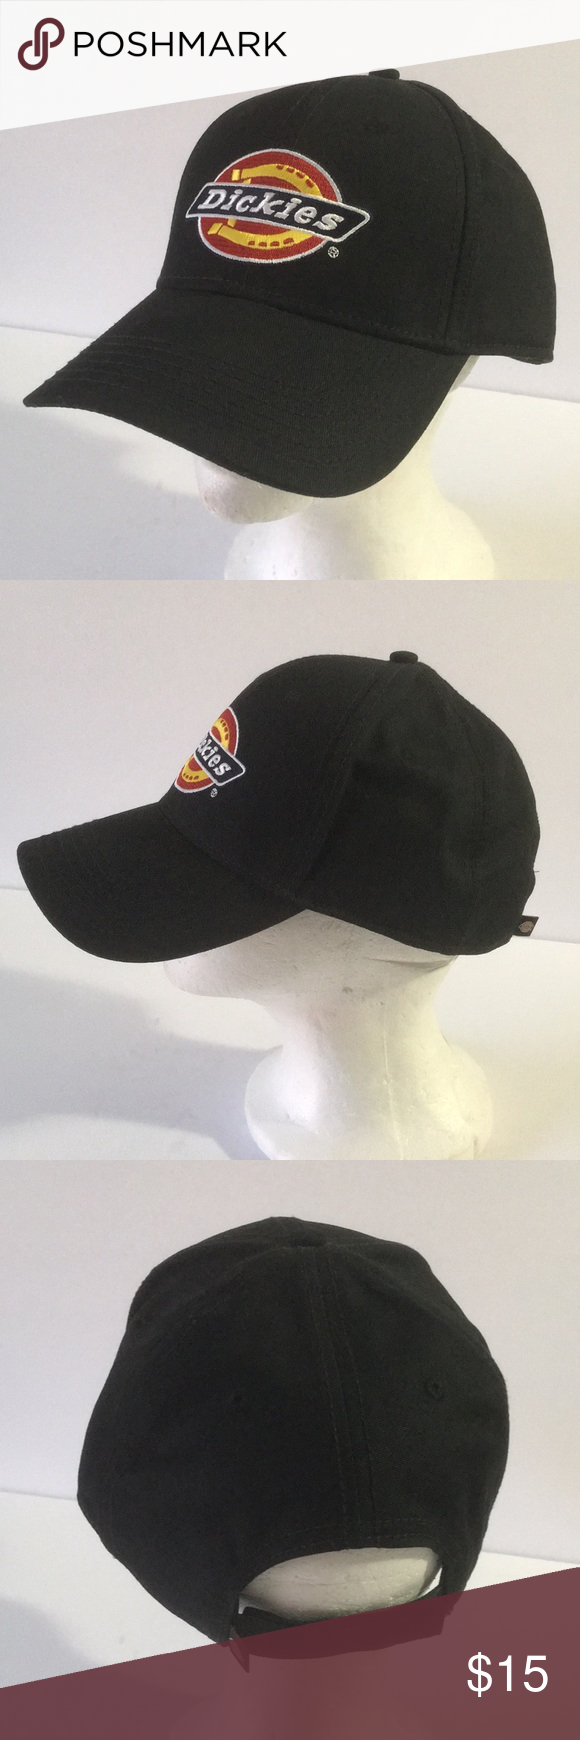 NWOT Dickies Work Cap Hat Black Does not have the tag but the cardboard is  still inside. Brand new. Never worn. Black hat with Velcro back closure. 5b8f69aa8f4